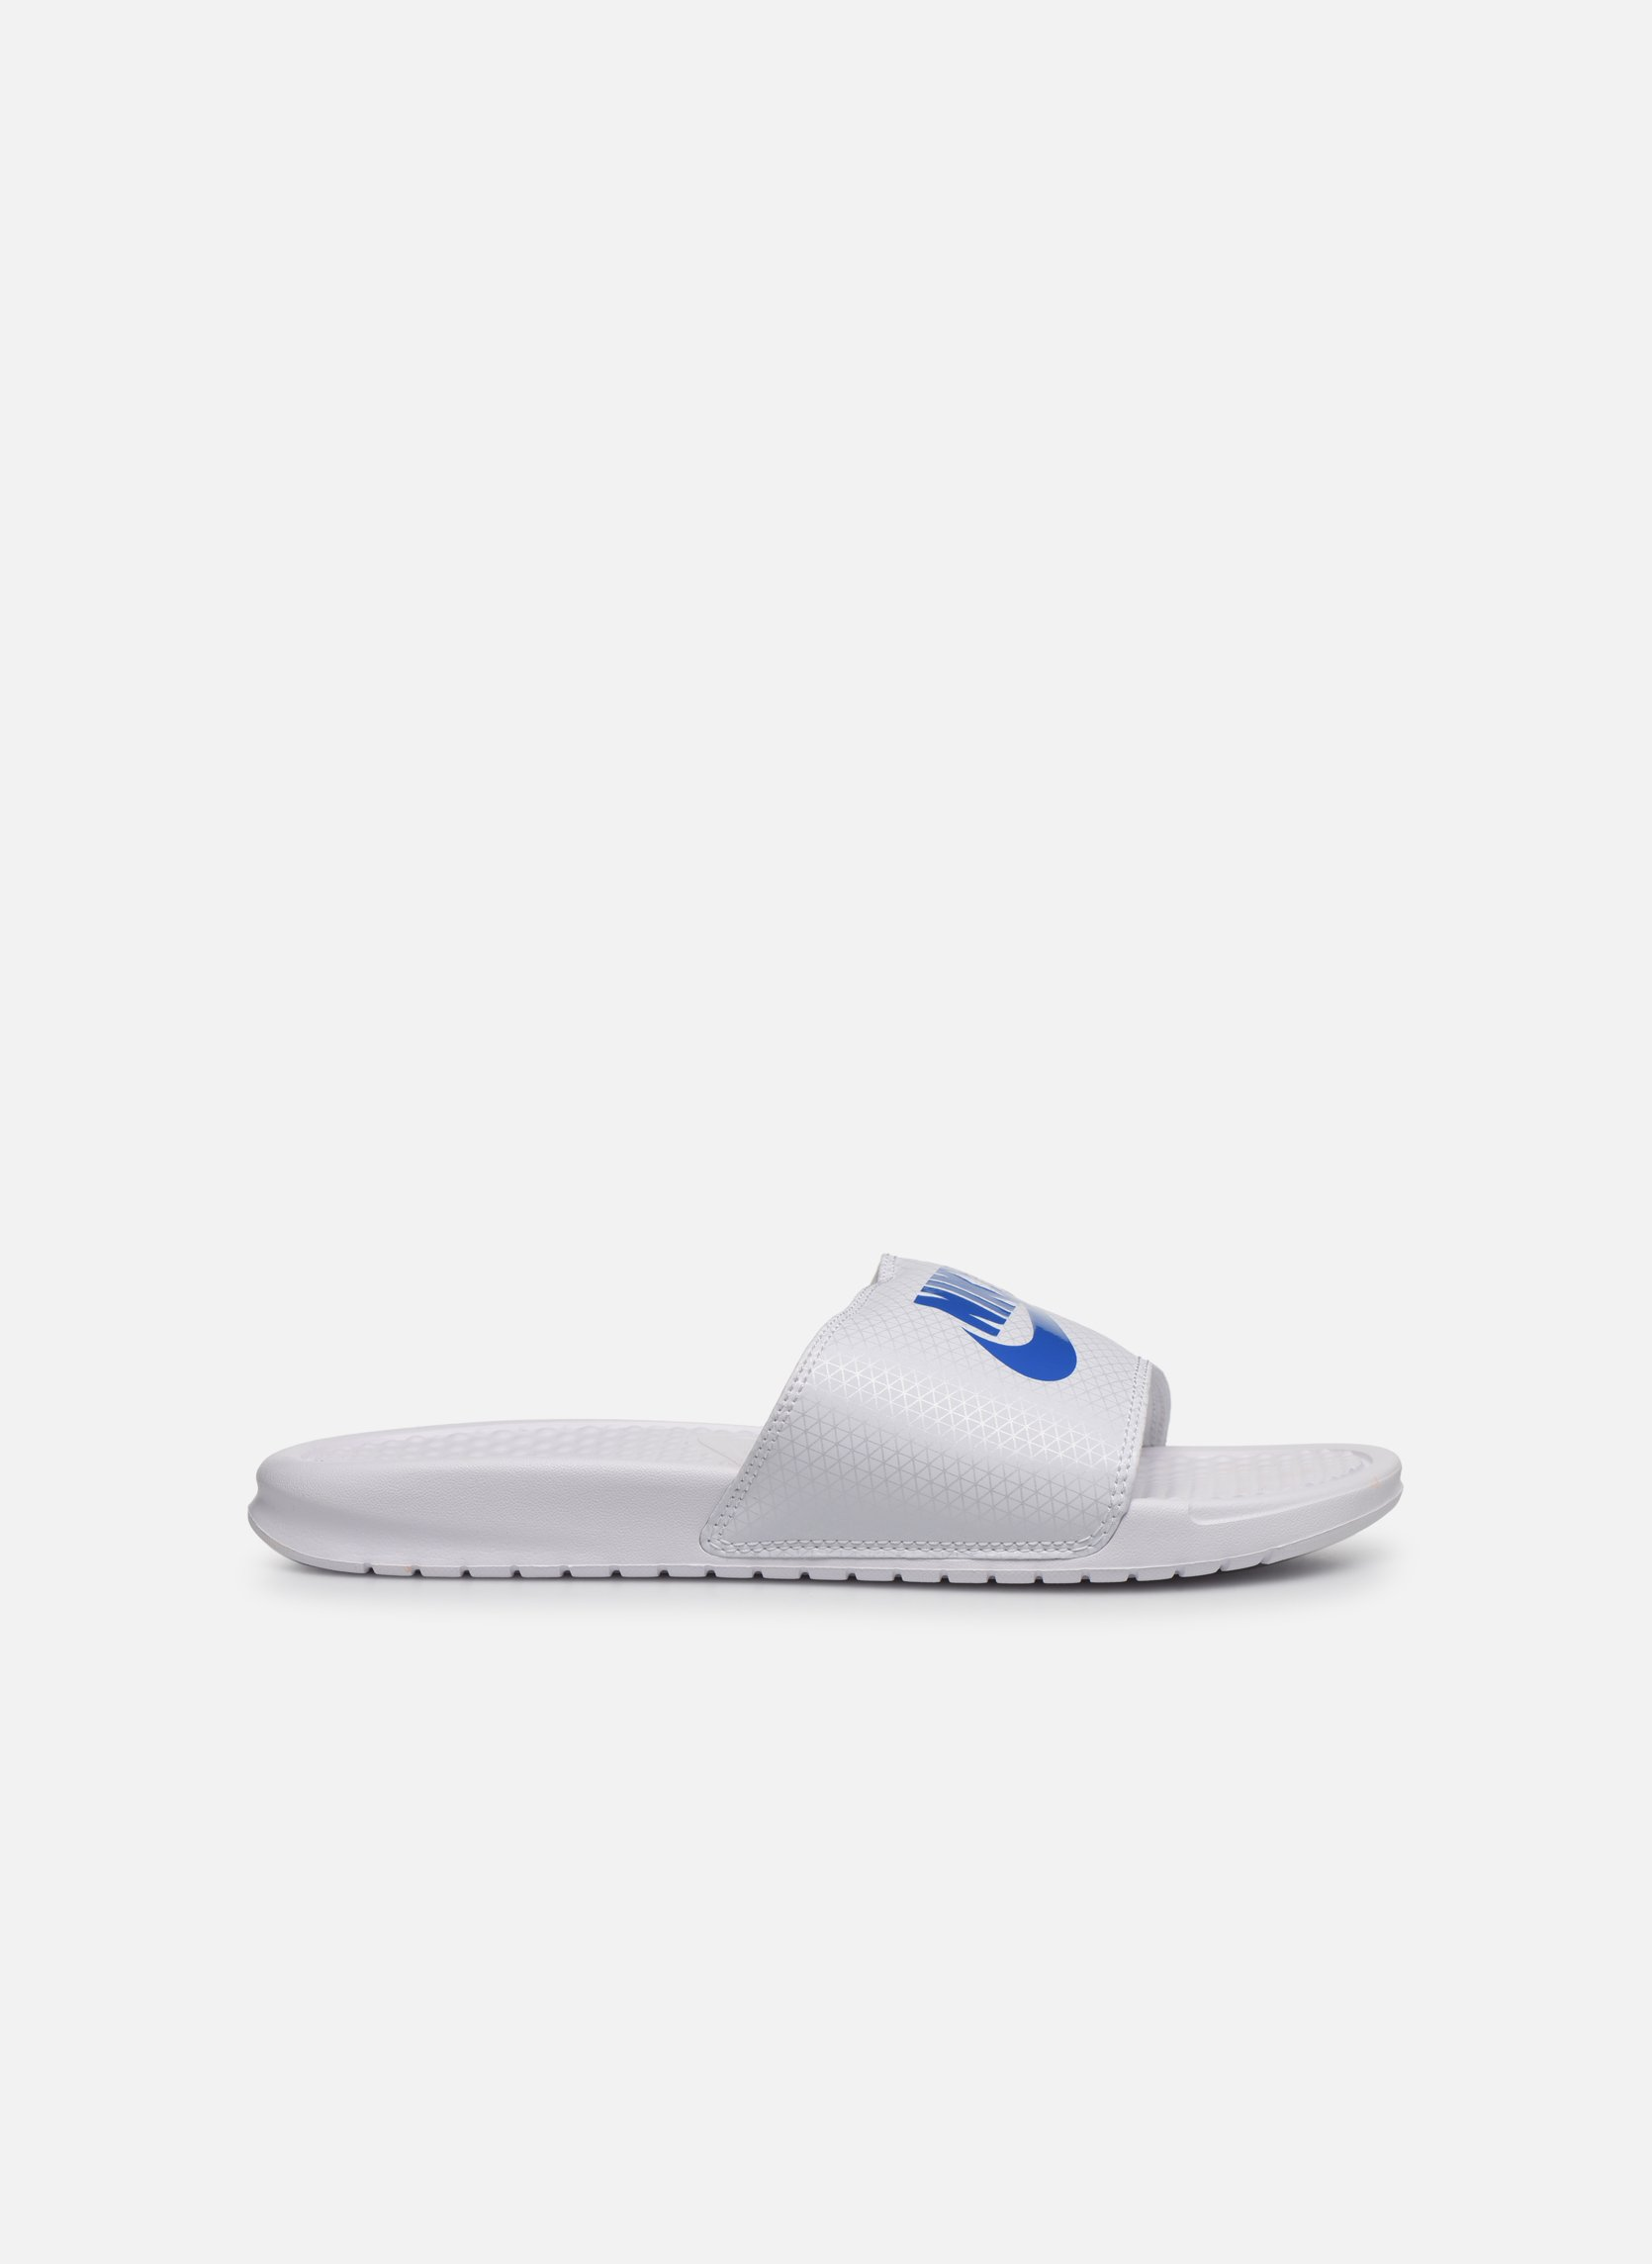 Benassi Jdi WHITE/VARSITY ROYAL-WHITE